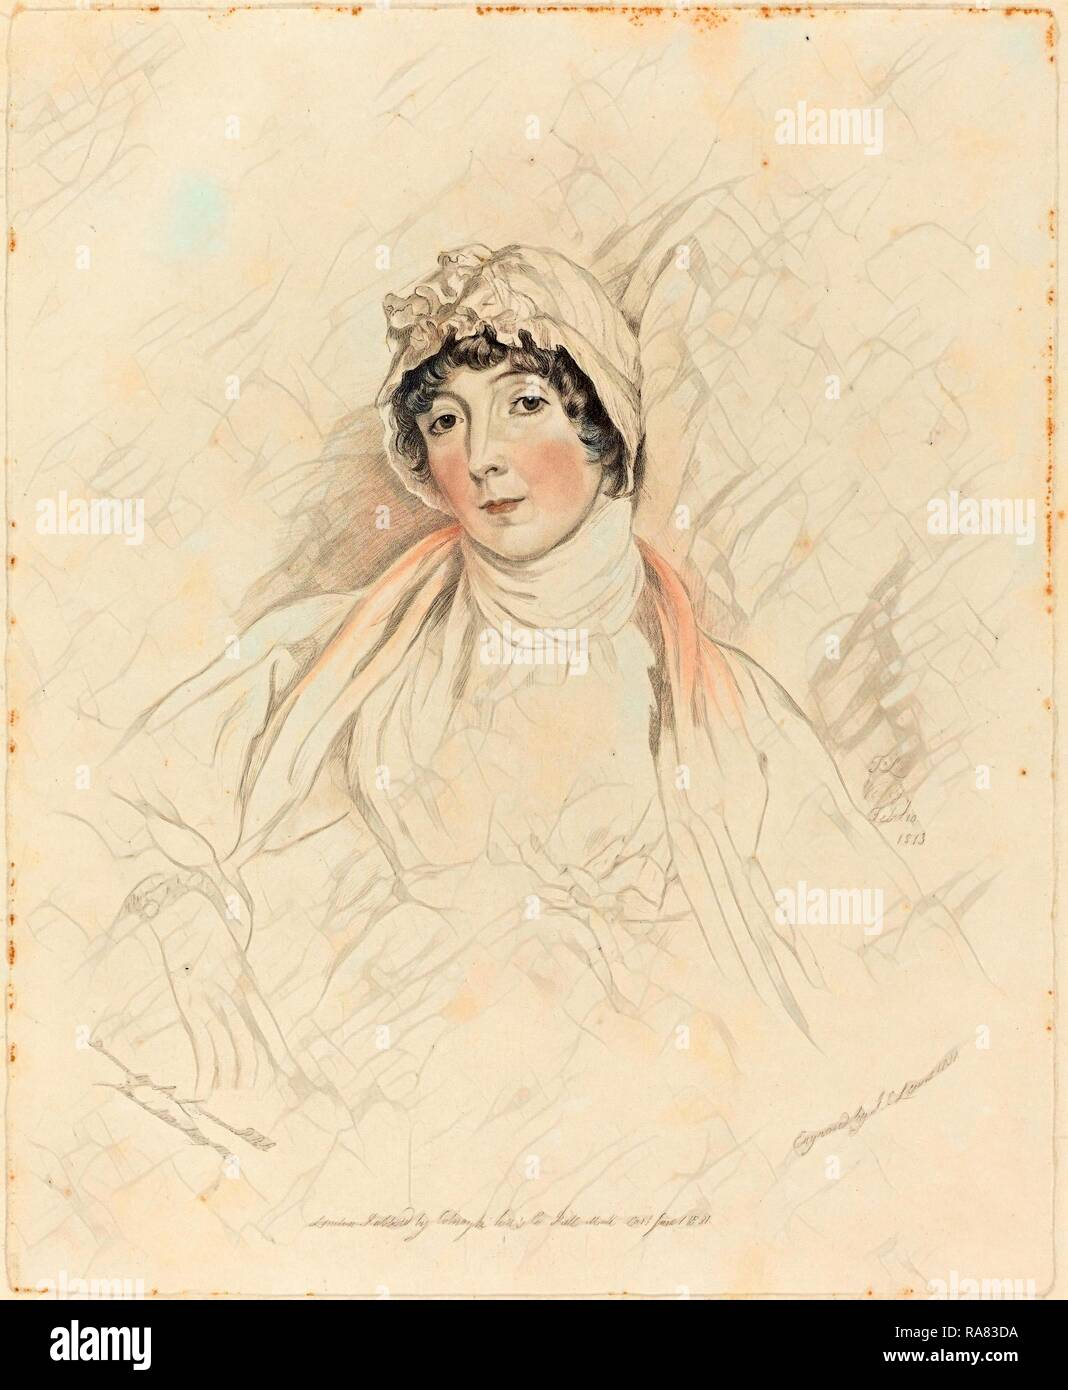 Frederick Christian Lewis I after Sir Thomas Lawrence (British, 1779 - 1856), Lucy Lawrence, 1831, hand-colored reimagined - Stock Image